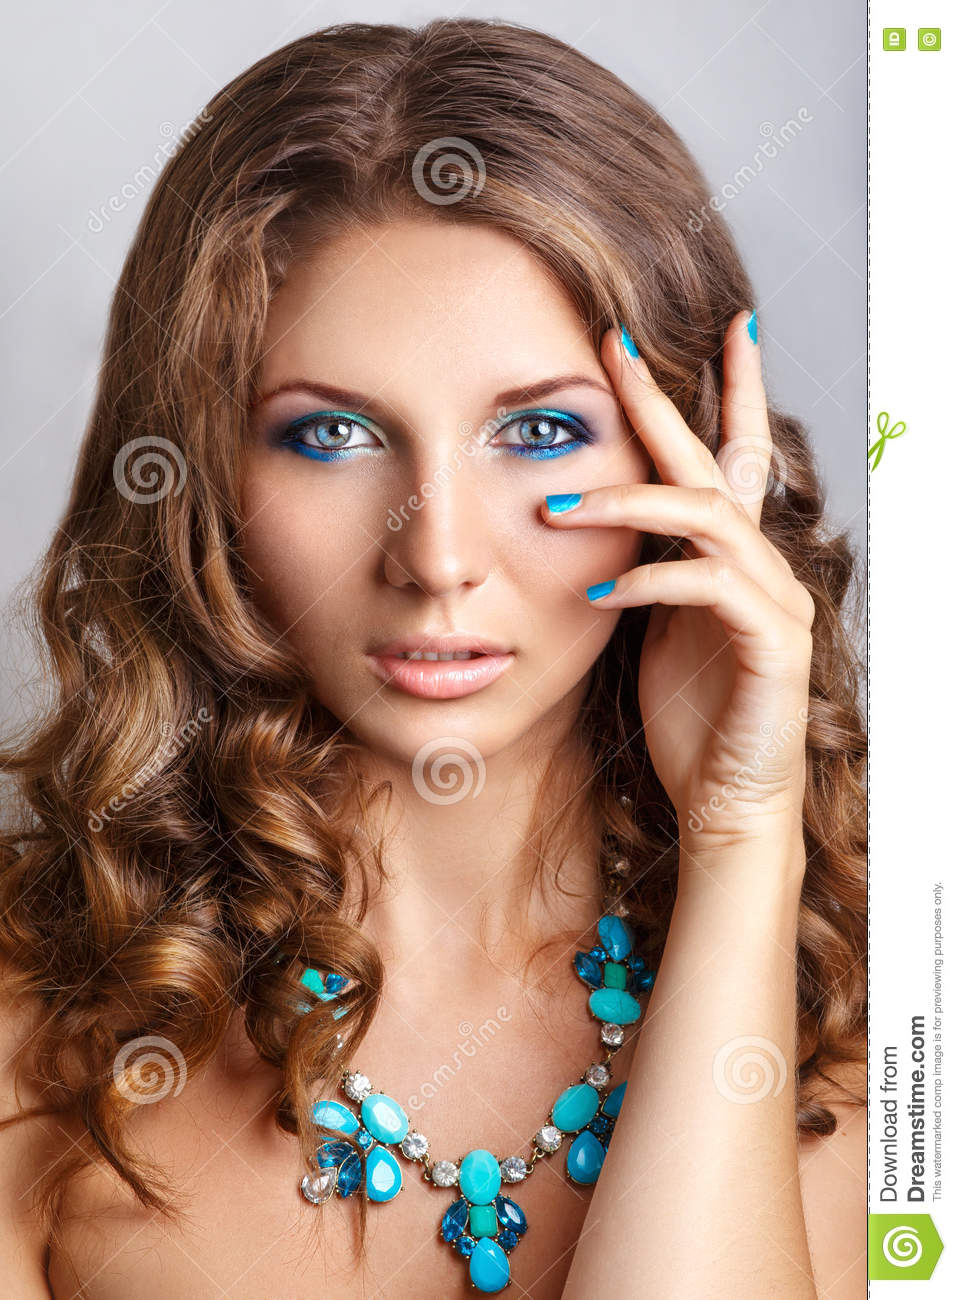 Glamour Beauty Model With Bright Fashion Make-up Royalty ...